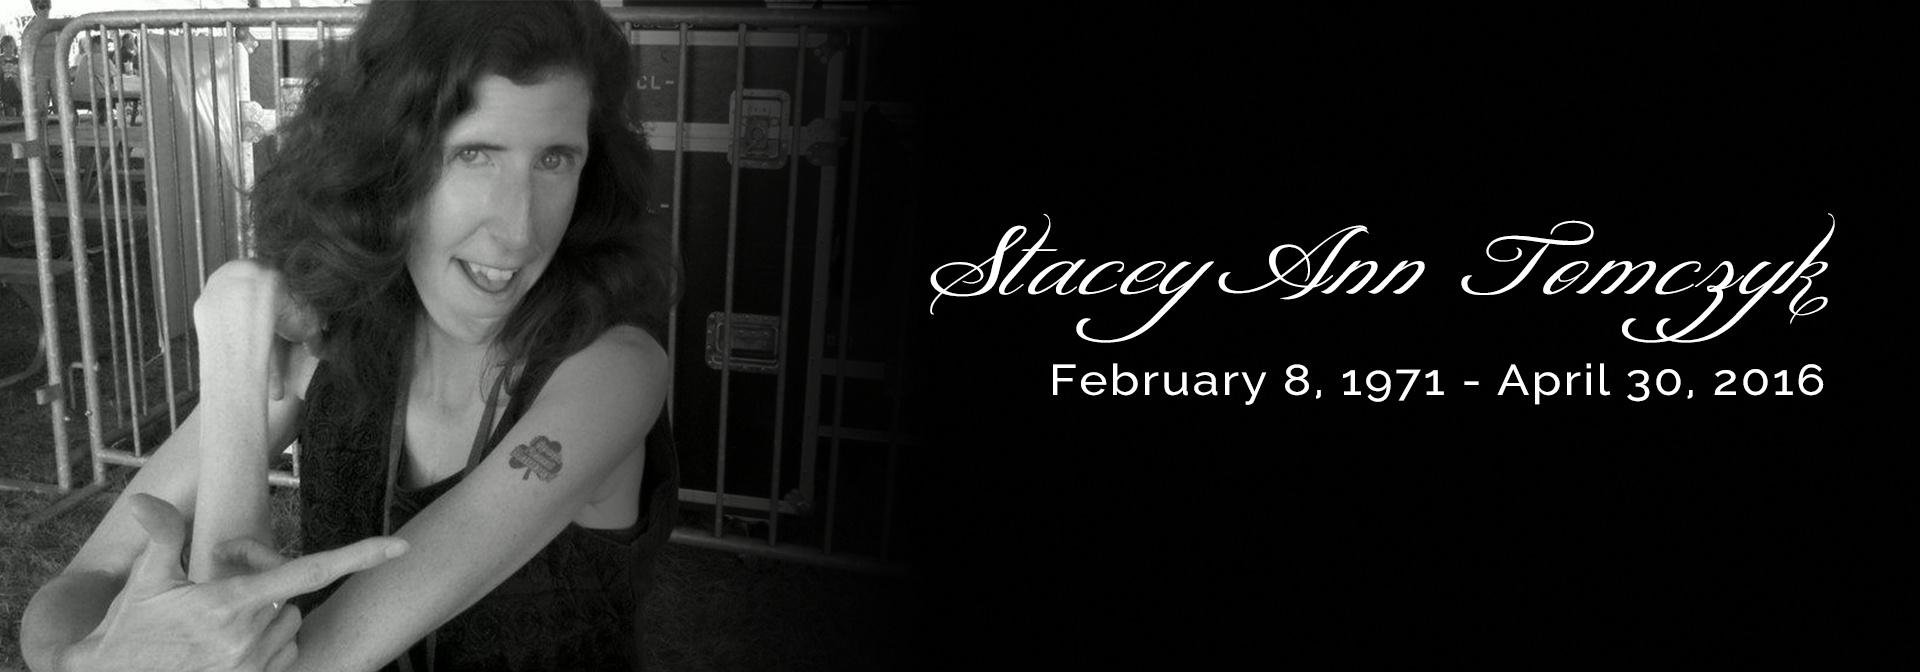 Stacey Ann Tomczyk, February 8, 1971 - April 30, 2016